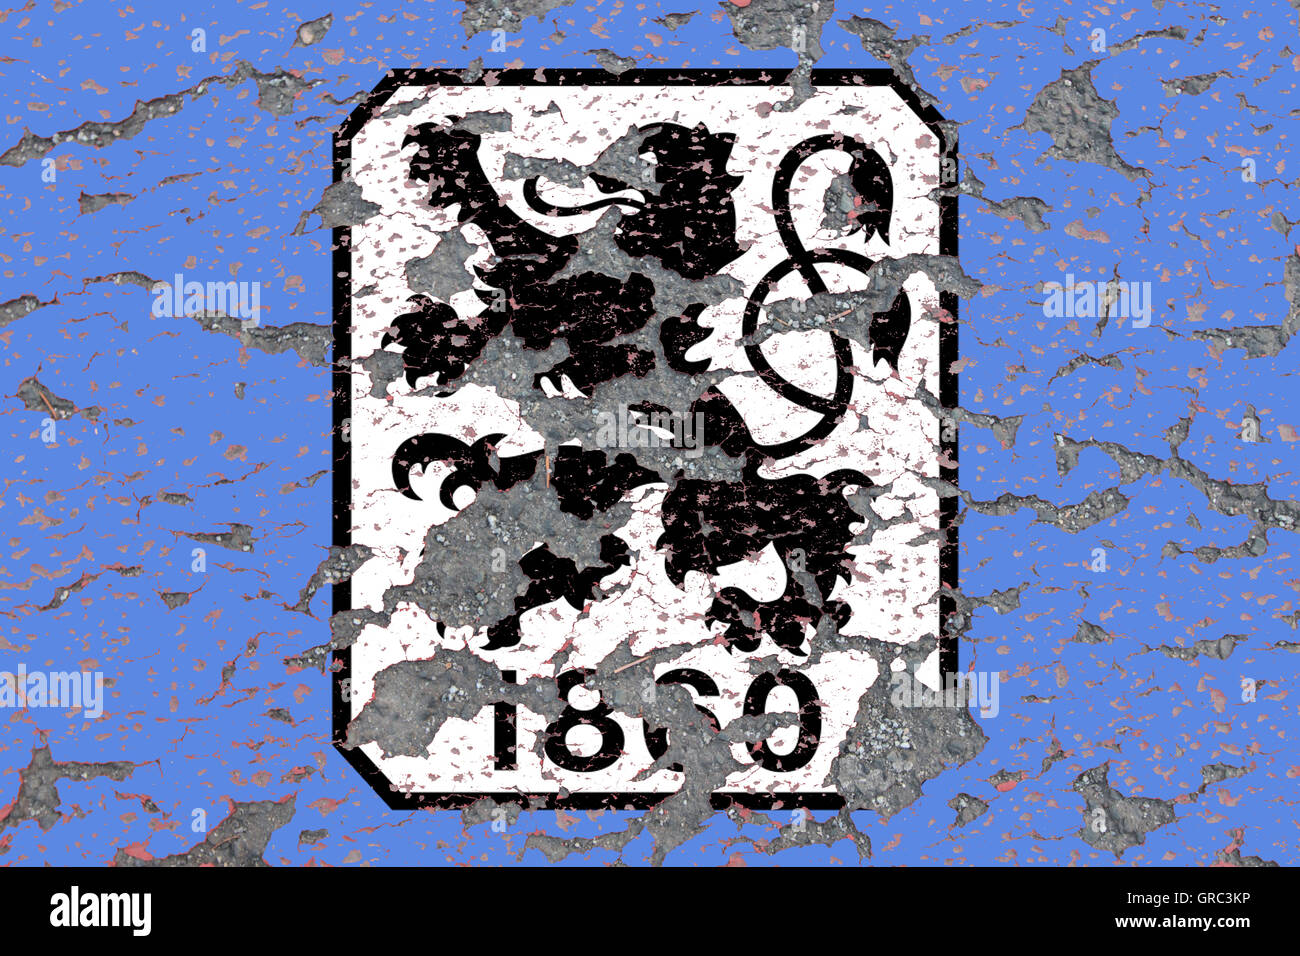 Eroding Logos Of Soccer Club 1860 Muenchen - Stock Image